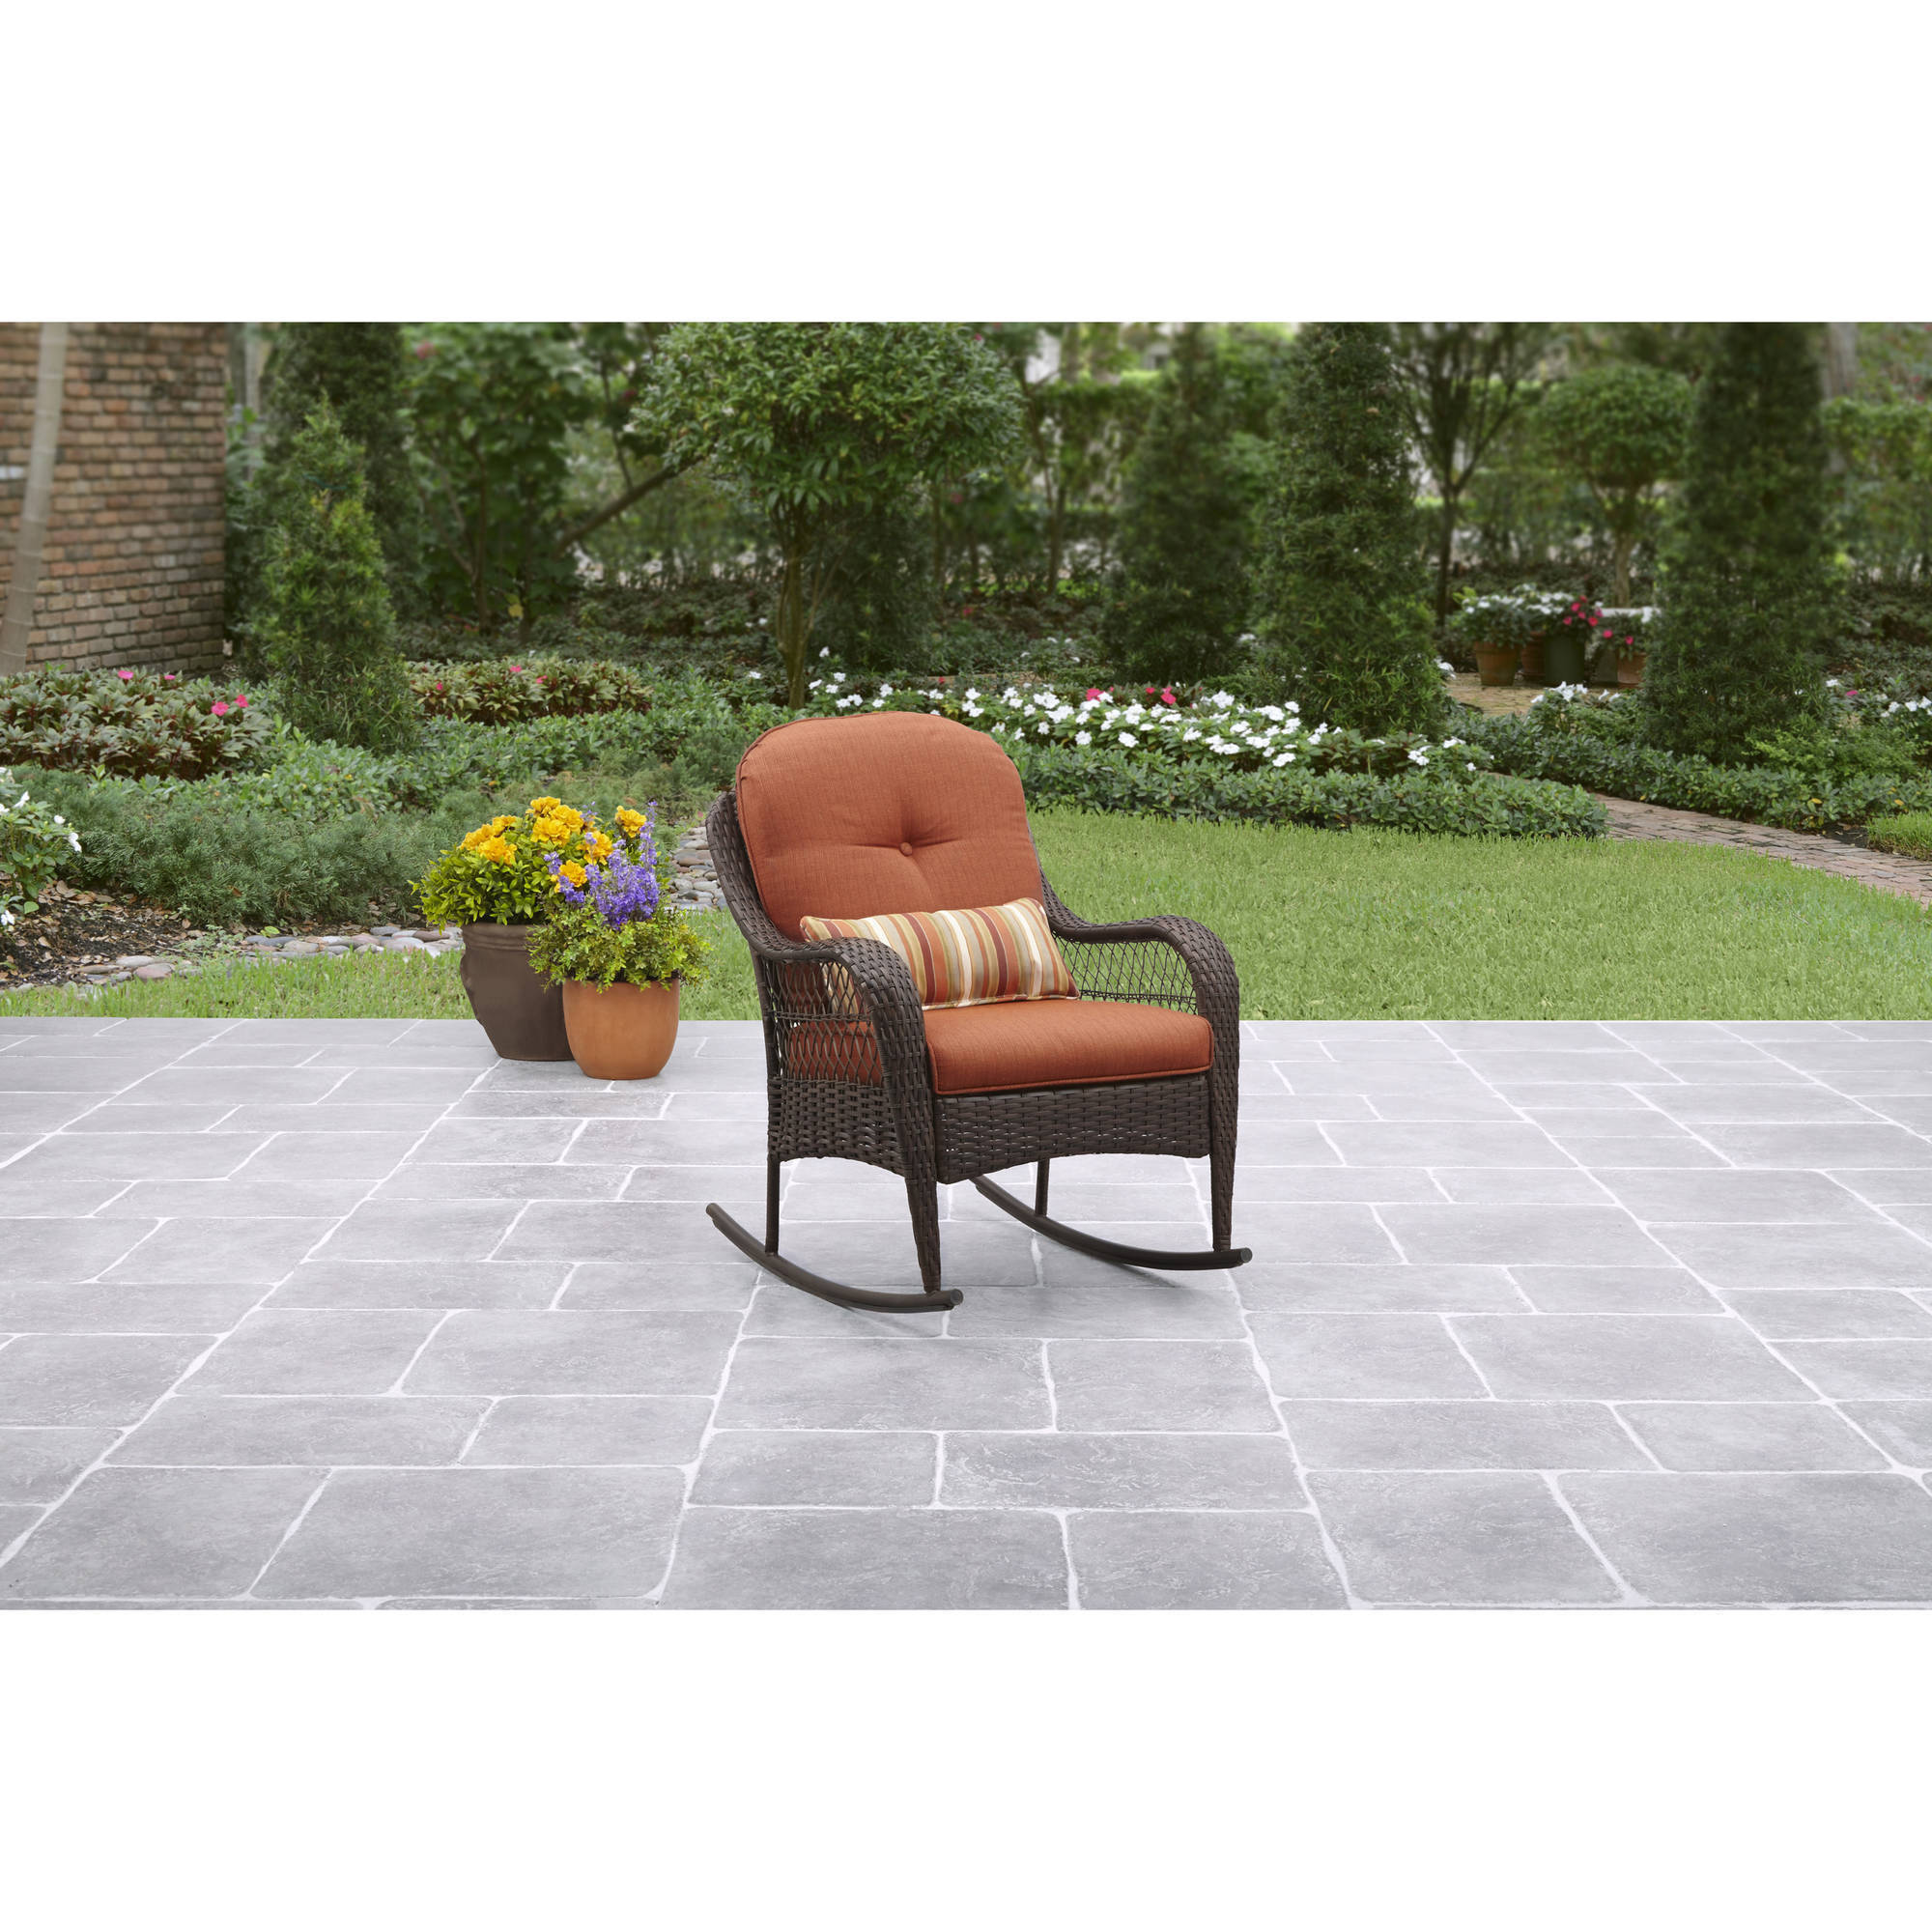 better homes and gardens azalea ridge porch rocking chair walmartcom